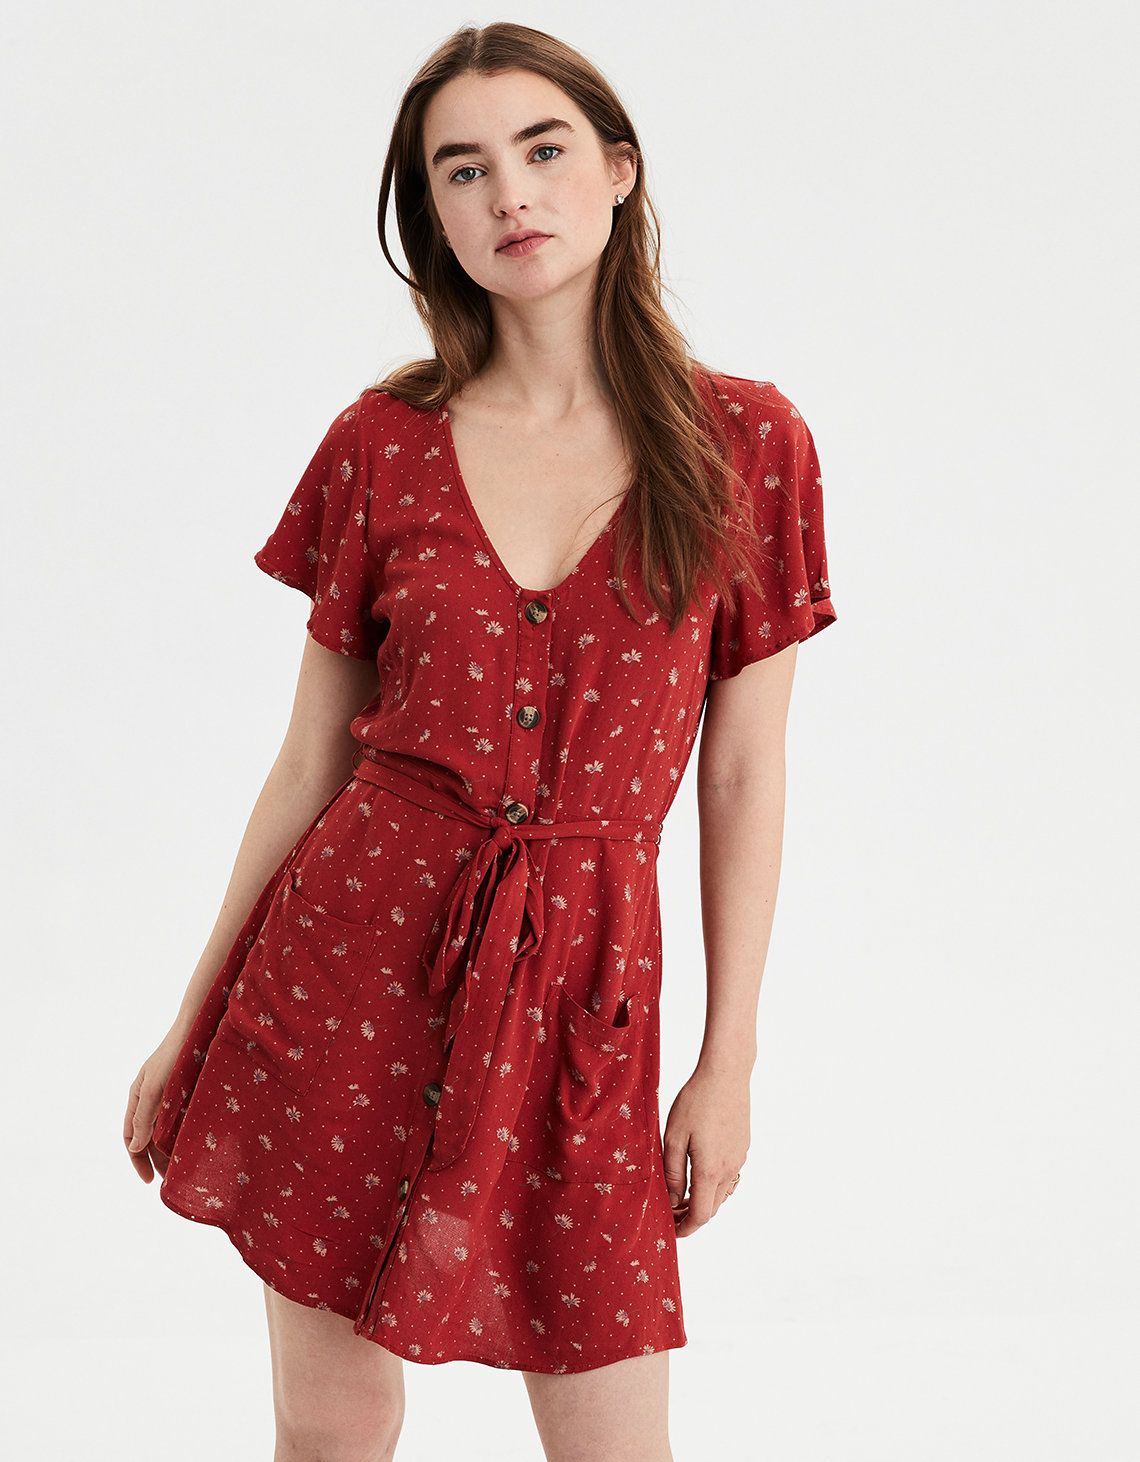 5310b3658e American Eagle Outfitters · Dolls · Product Image Button Up Dress